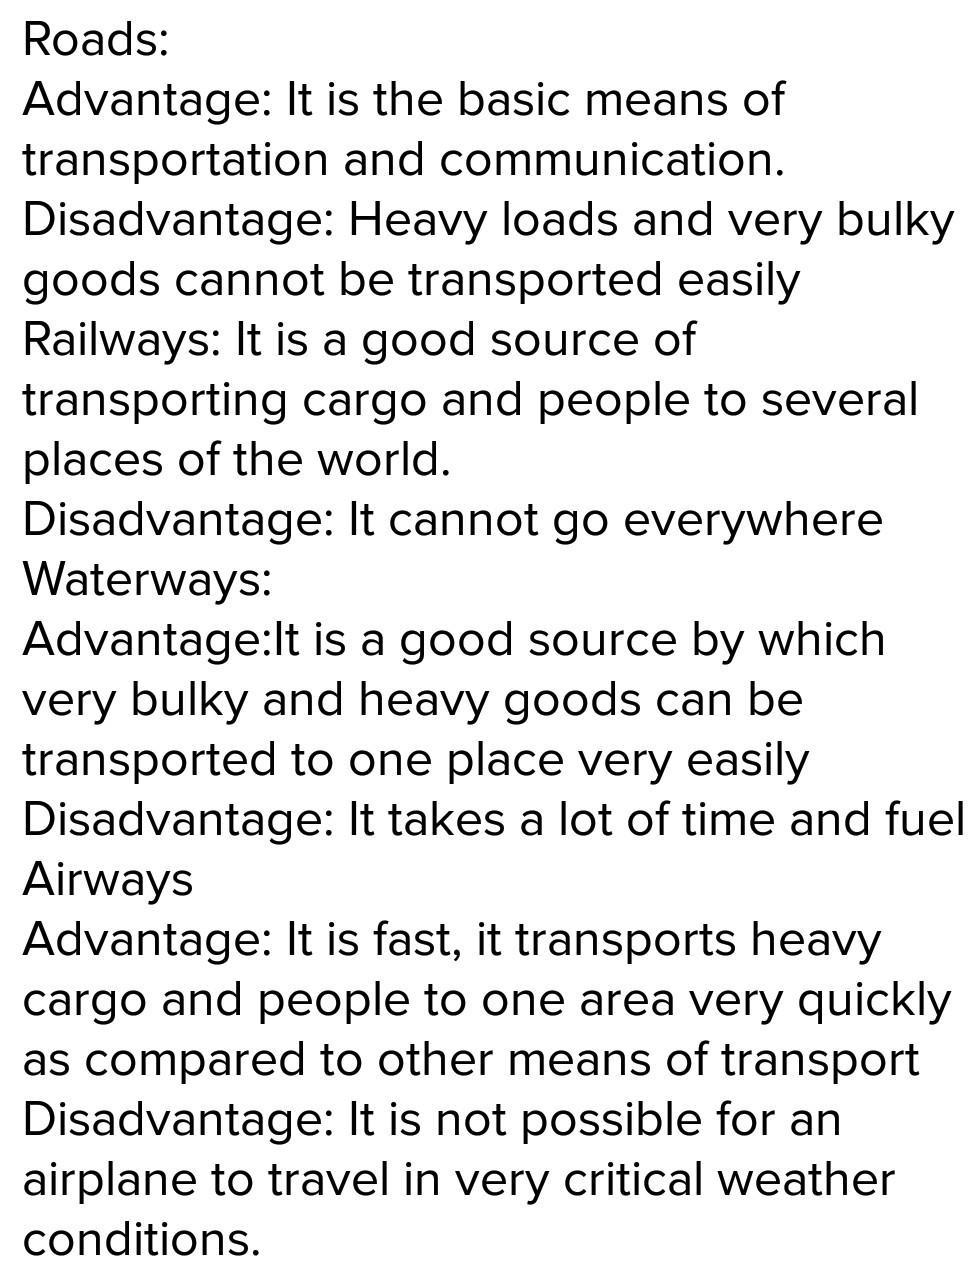 What are the advantages and disadvantage of roadways